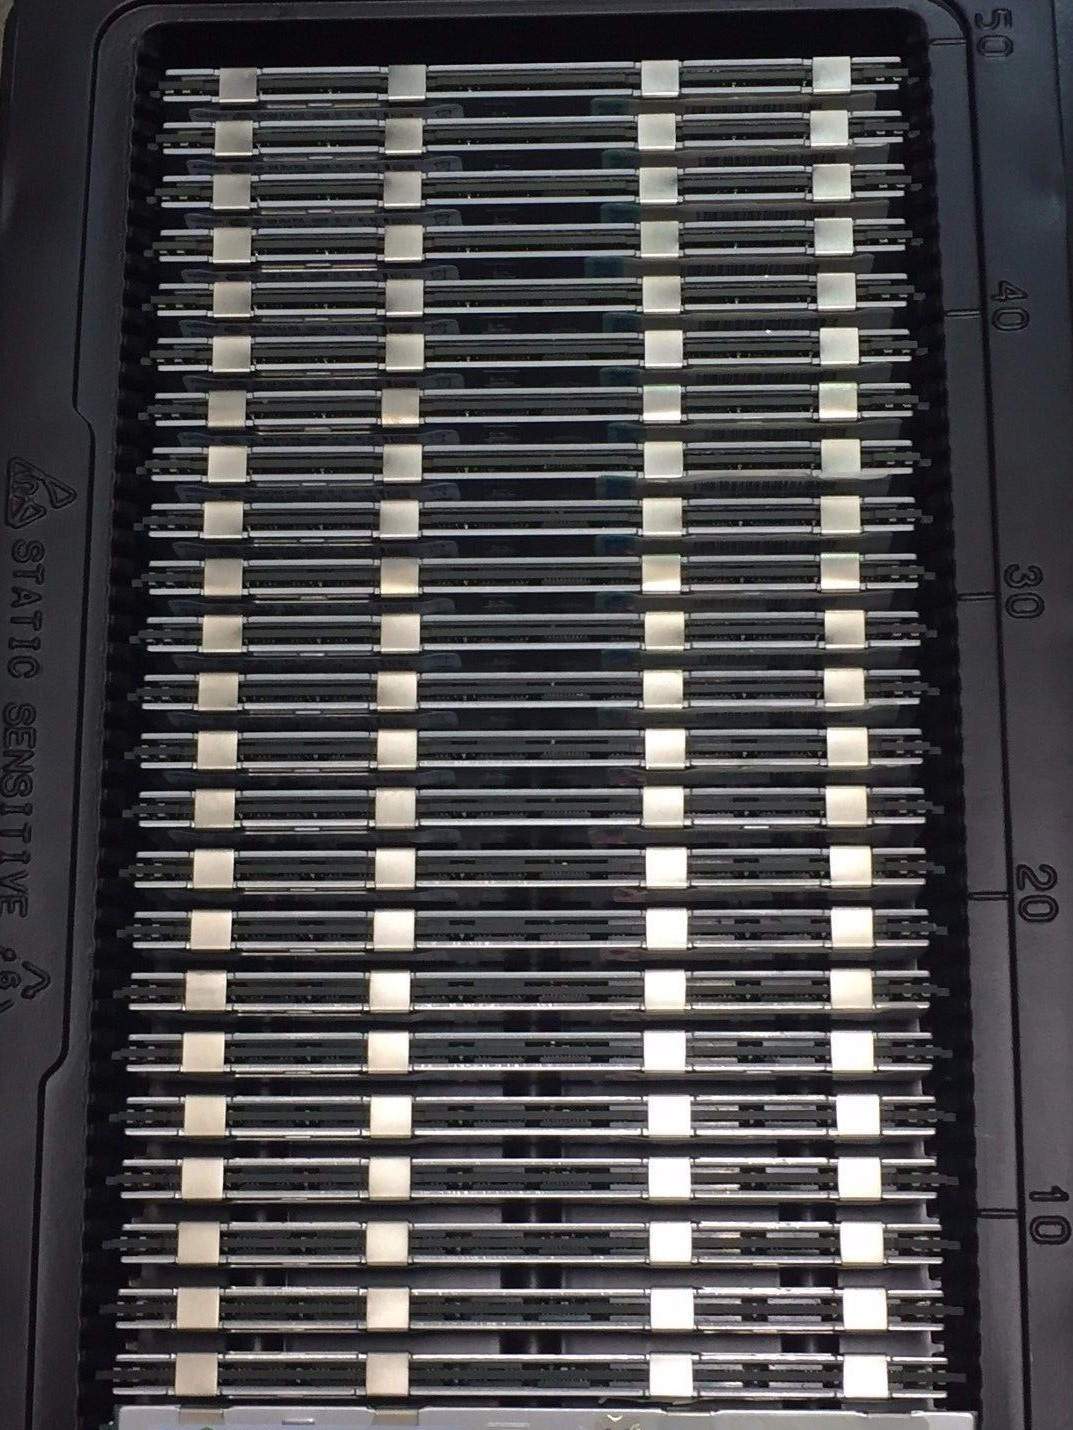 HMT42GR7AFR4C RD  16G 2RX4 PC3 14900R 1866  Tested Well